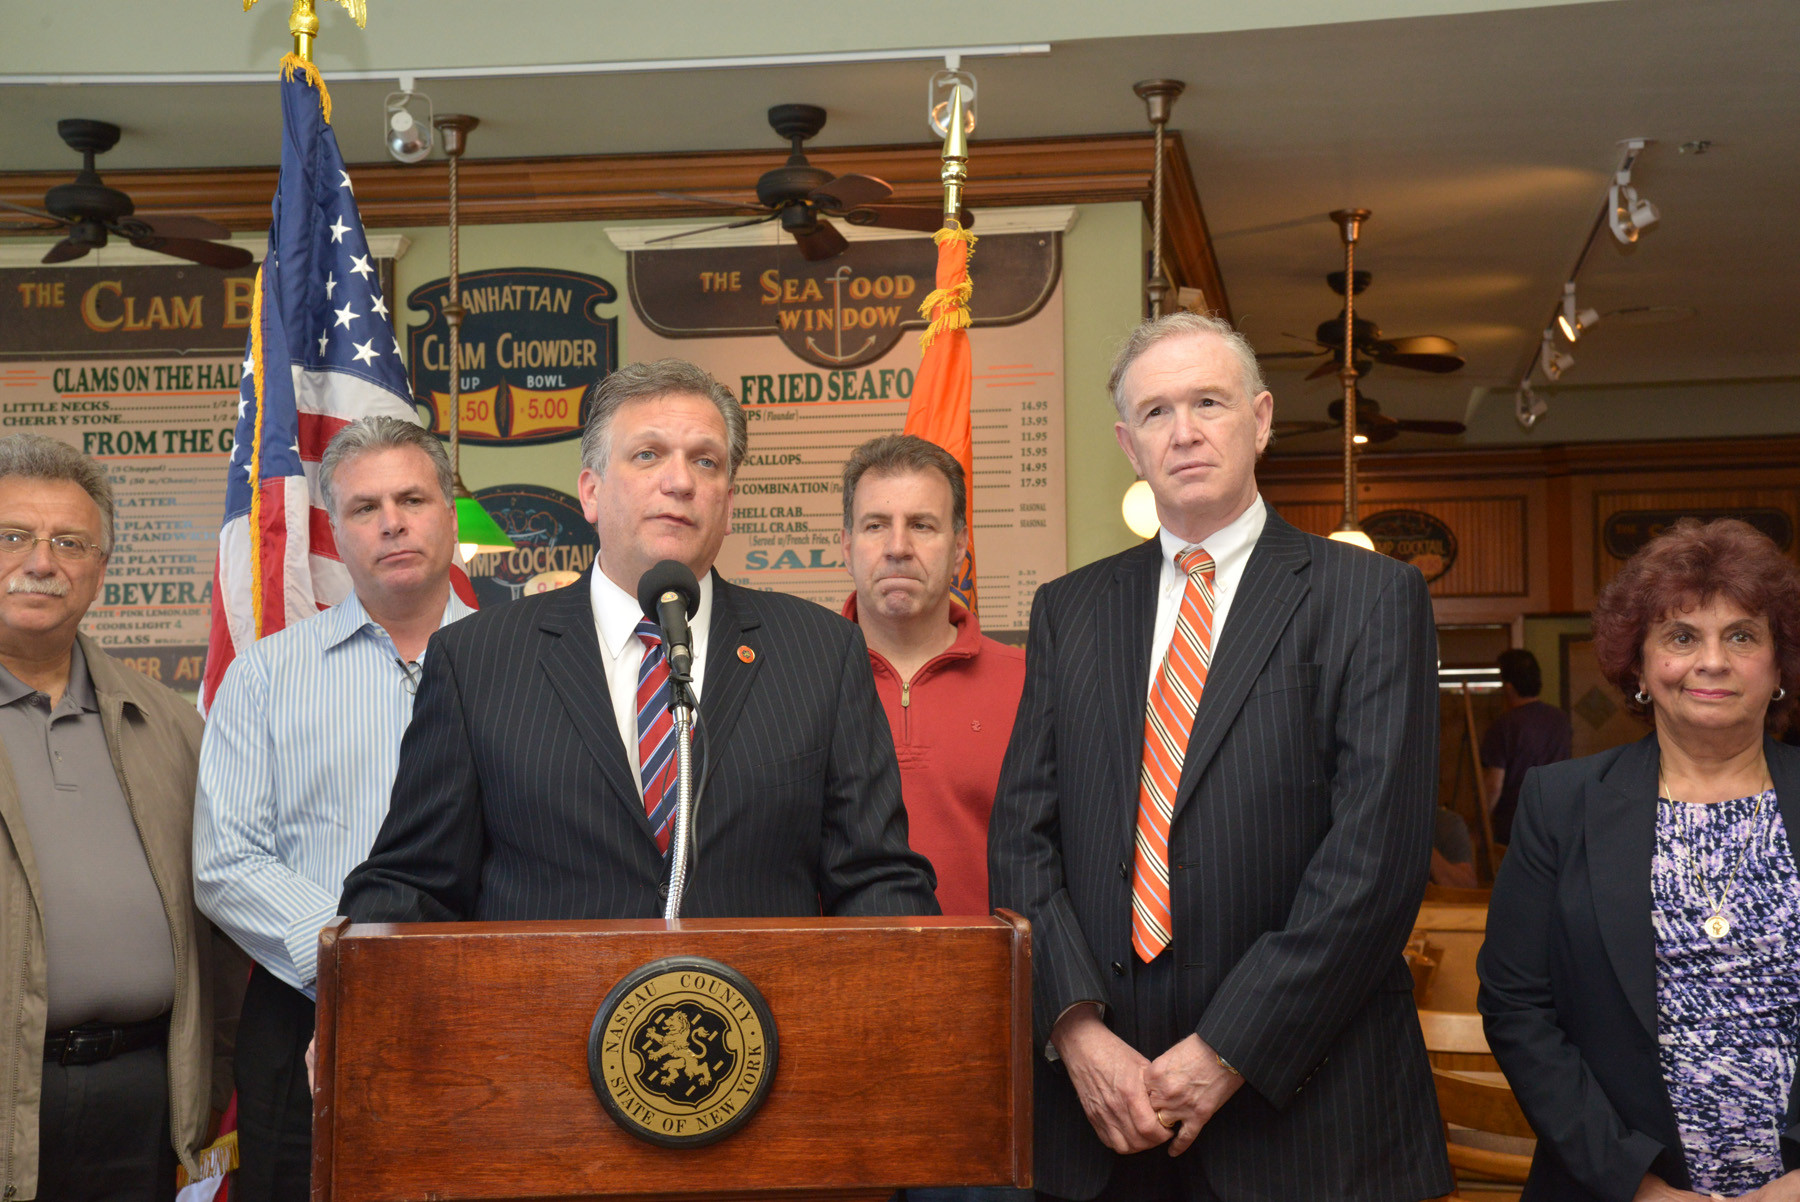 Nassau County Executive Ed Magano welcomed back Peters Clam Bar six months after it was devastated by Hurricane Sandy. With Magnano were, from left, co-owners Dominick DeSimone and Angelo Remunni, and County Legislator Howard Kopel.